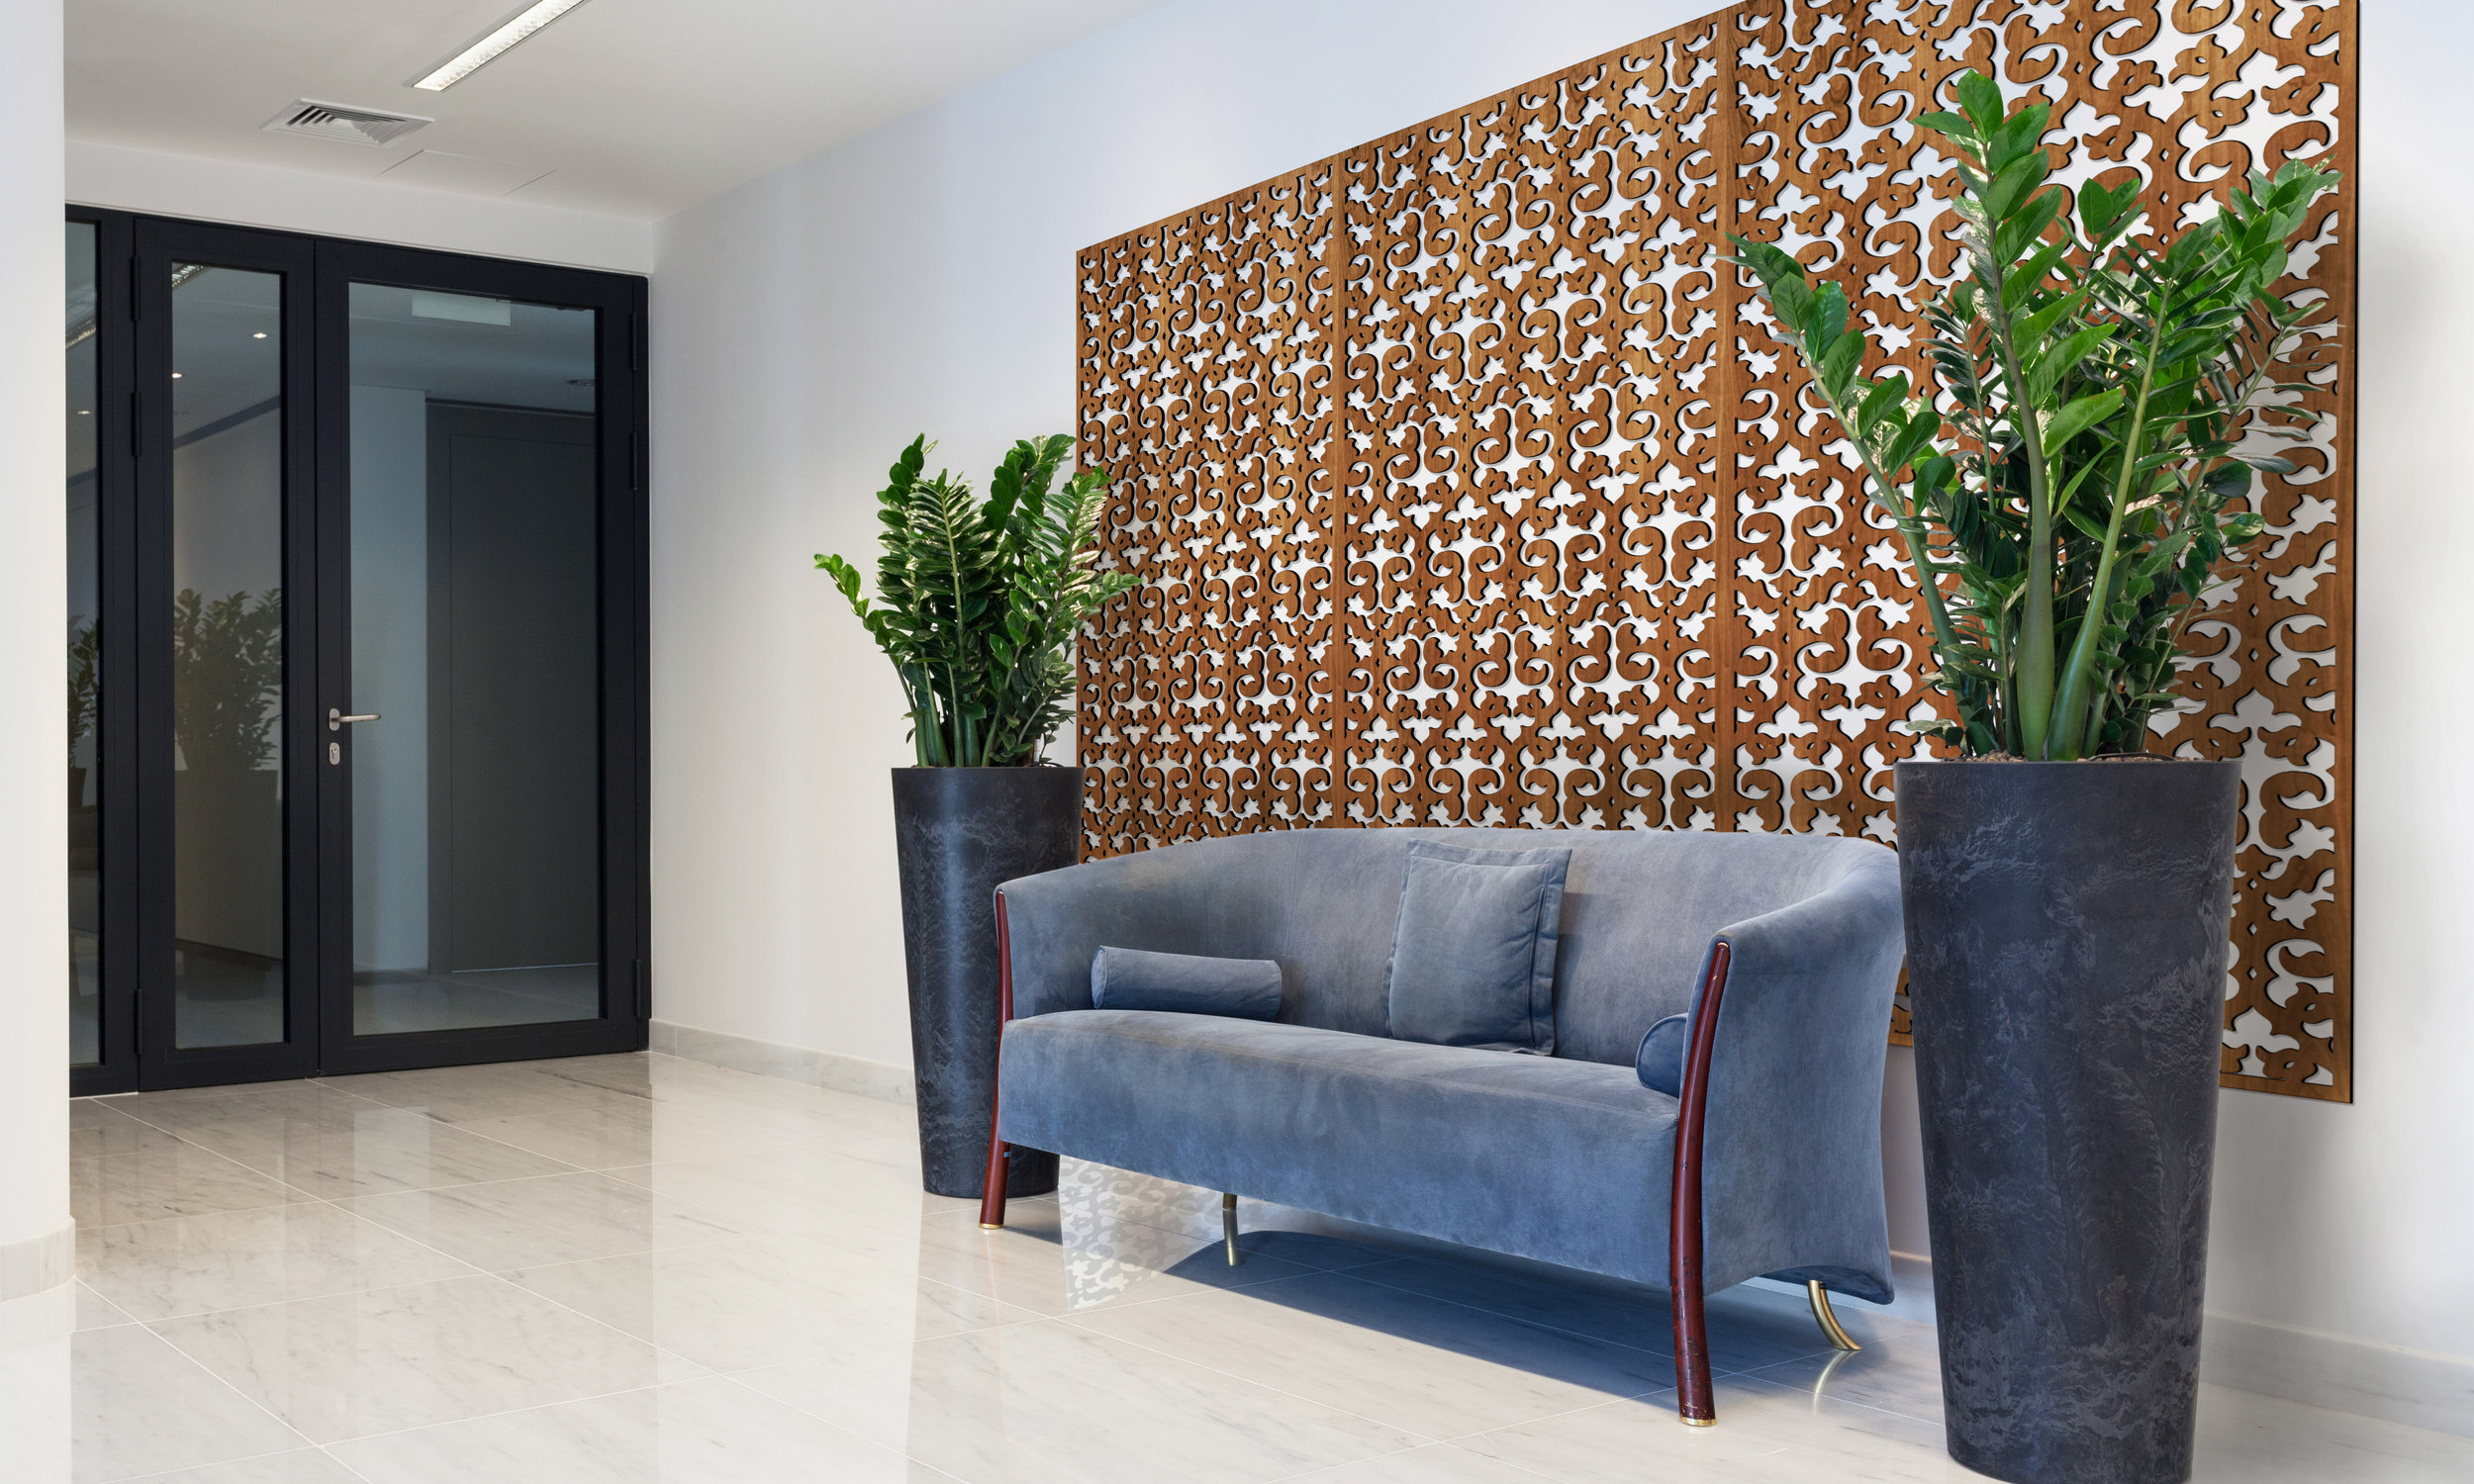 Installation Rendering A   Wallpaper decorative office wall panel - shown in cherry